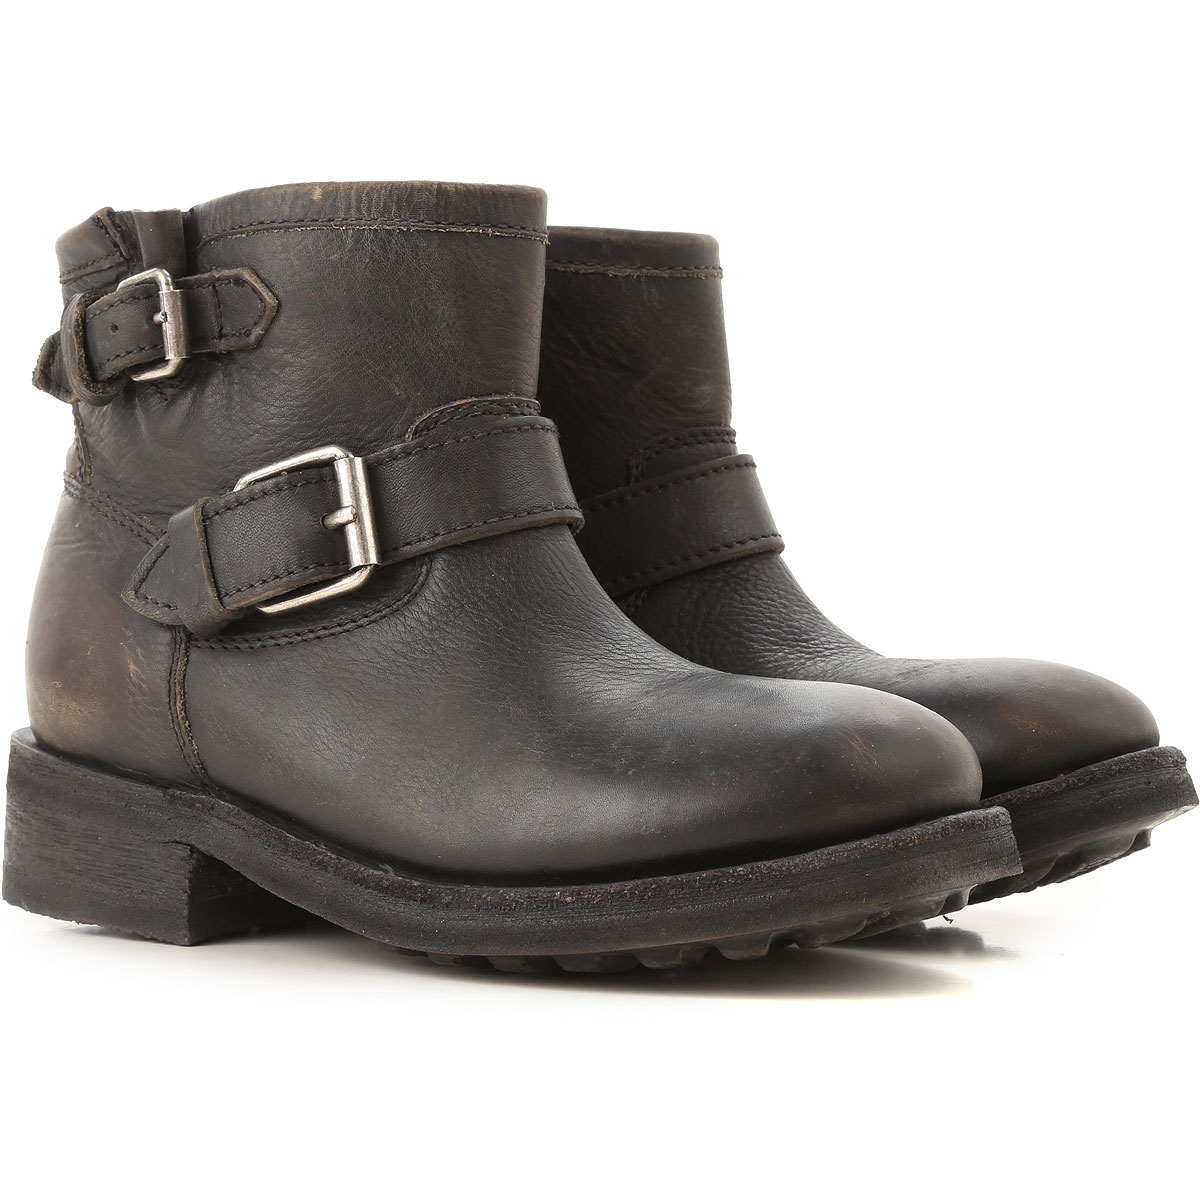 Image of Ash Boots for Women, Booties, Black, Leather, 2017, 6 7 8